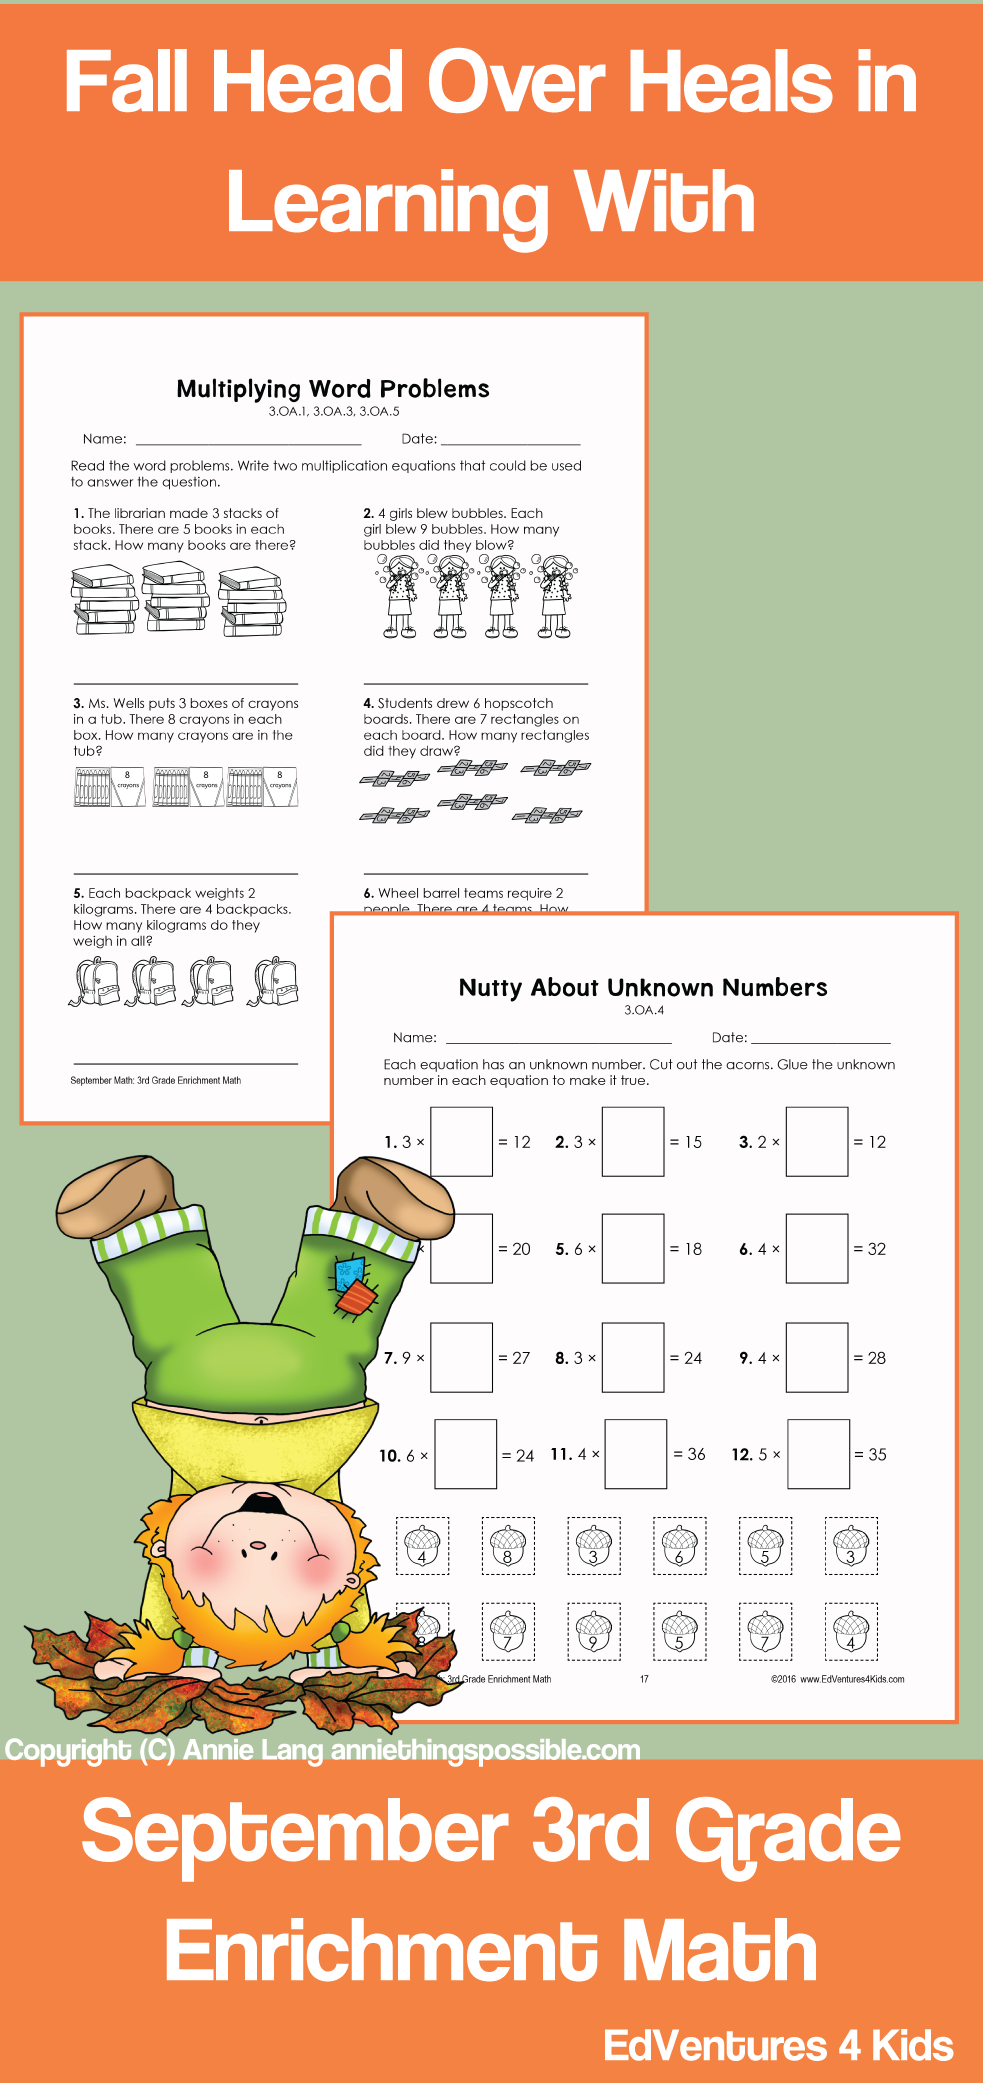 small resolution of September Enrichment Math for 3rd Grade is a collection of 15 challenging